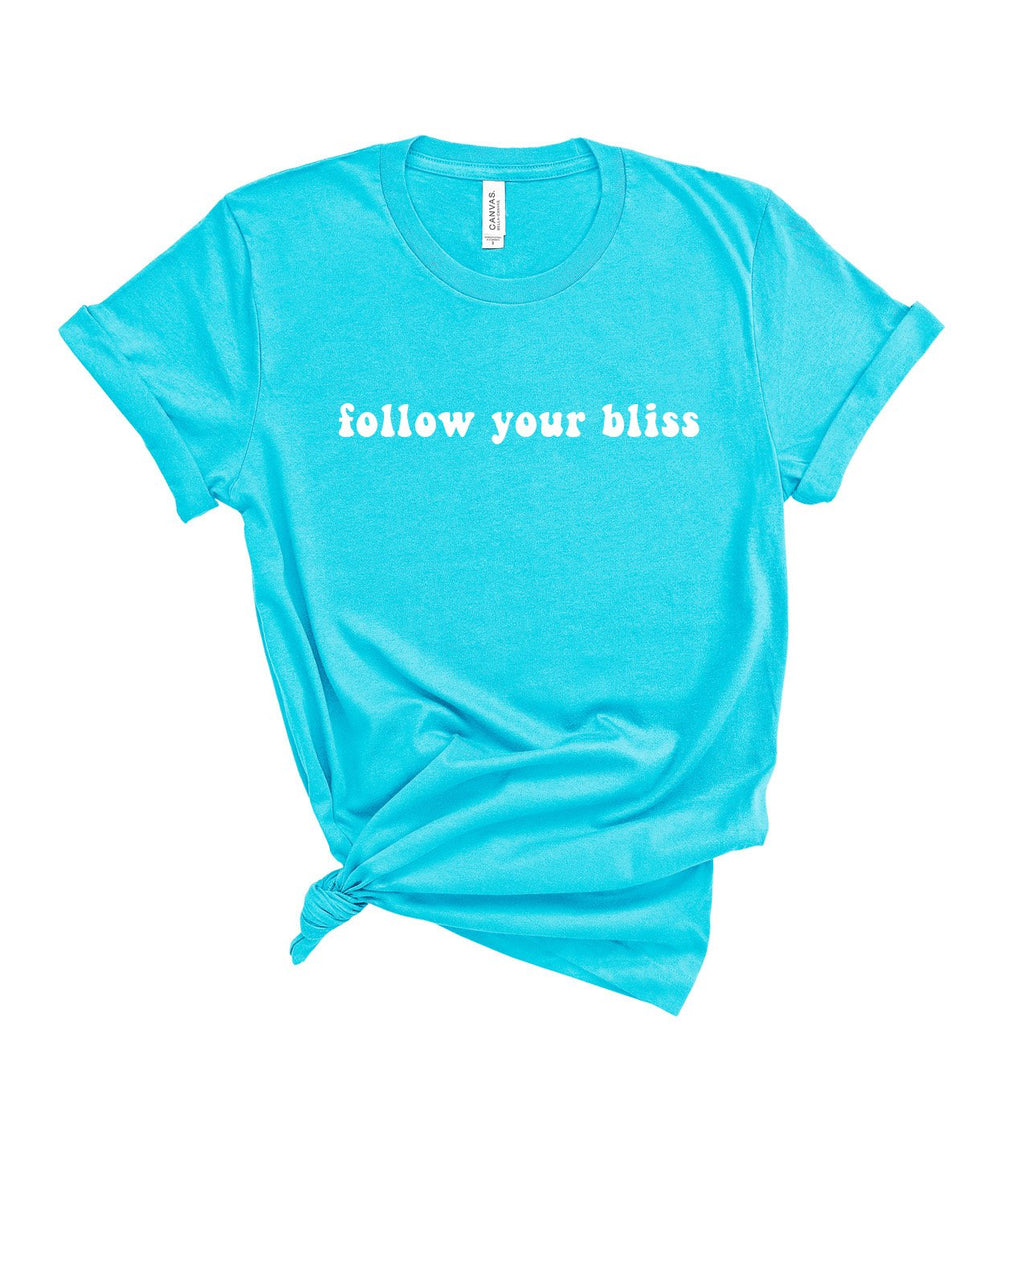 This cute motivational shirt for women is perfect as a reminder to follow your bliss and the Universe will open door where there were only walls.